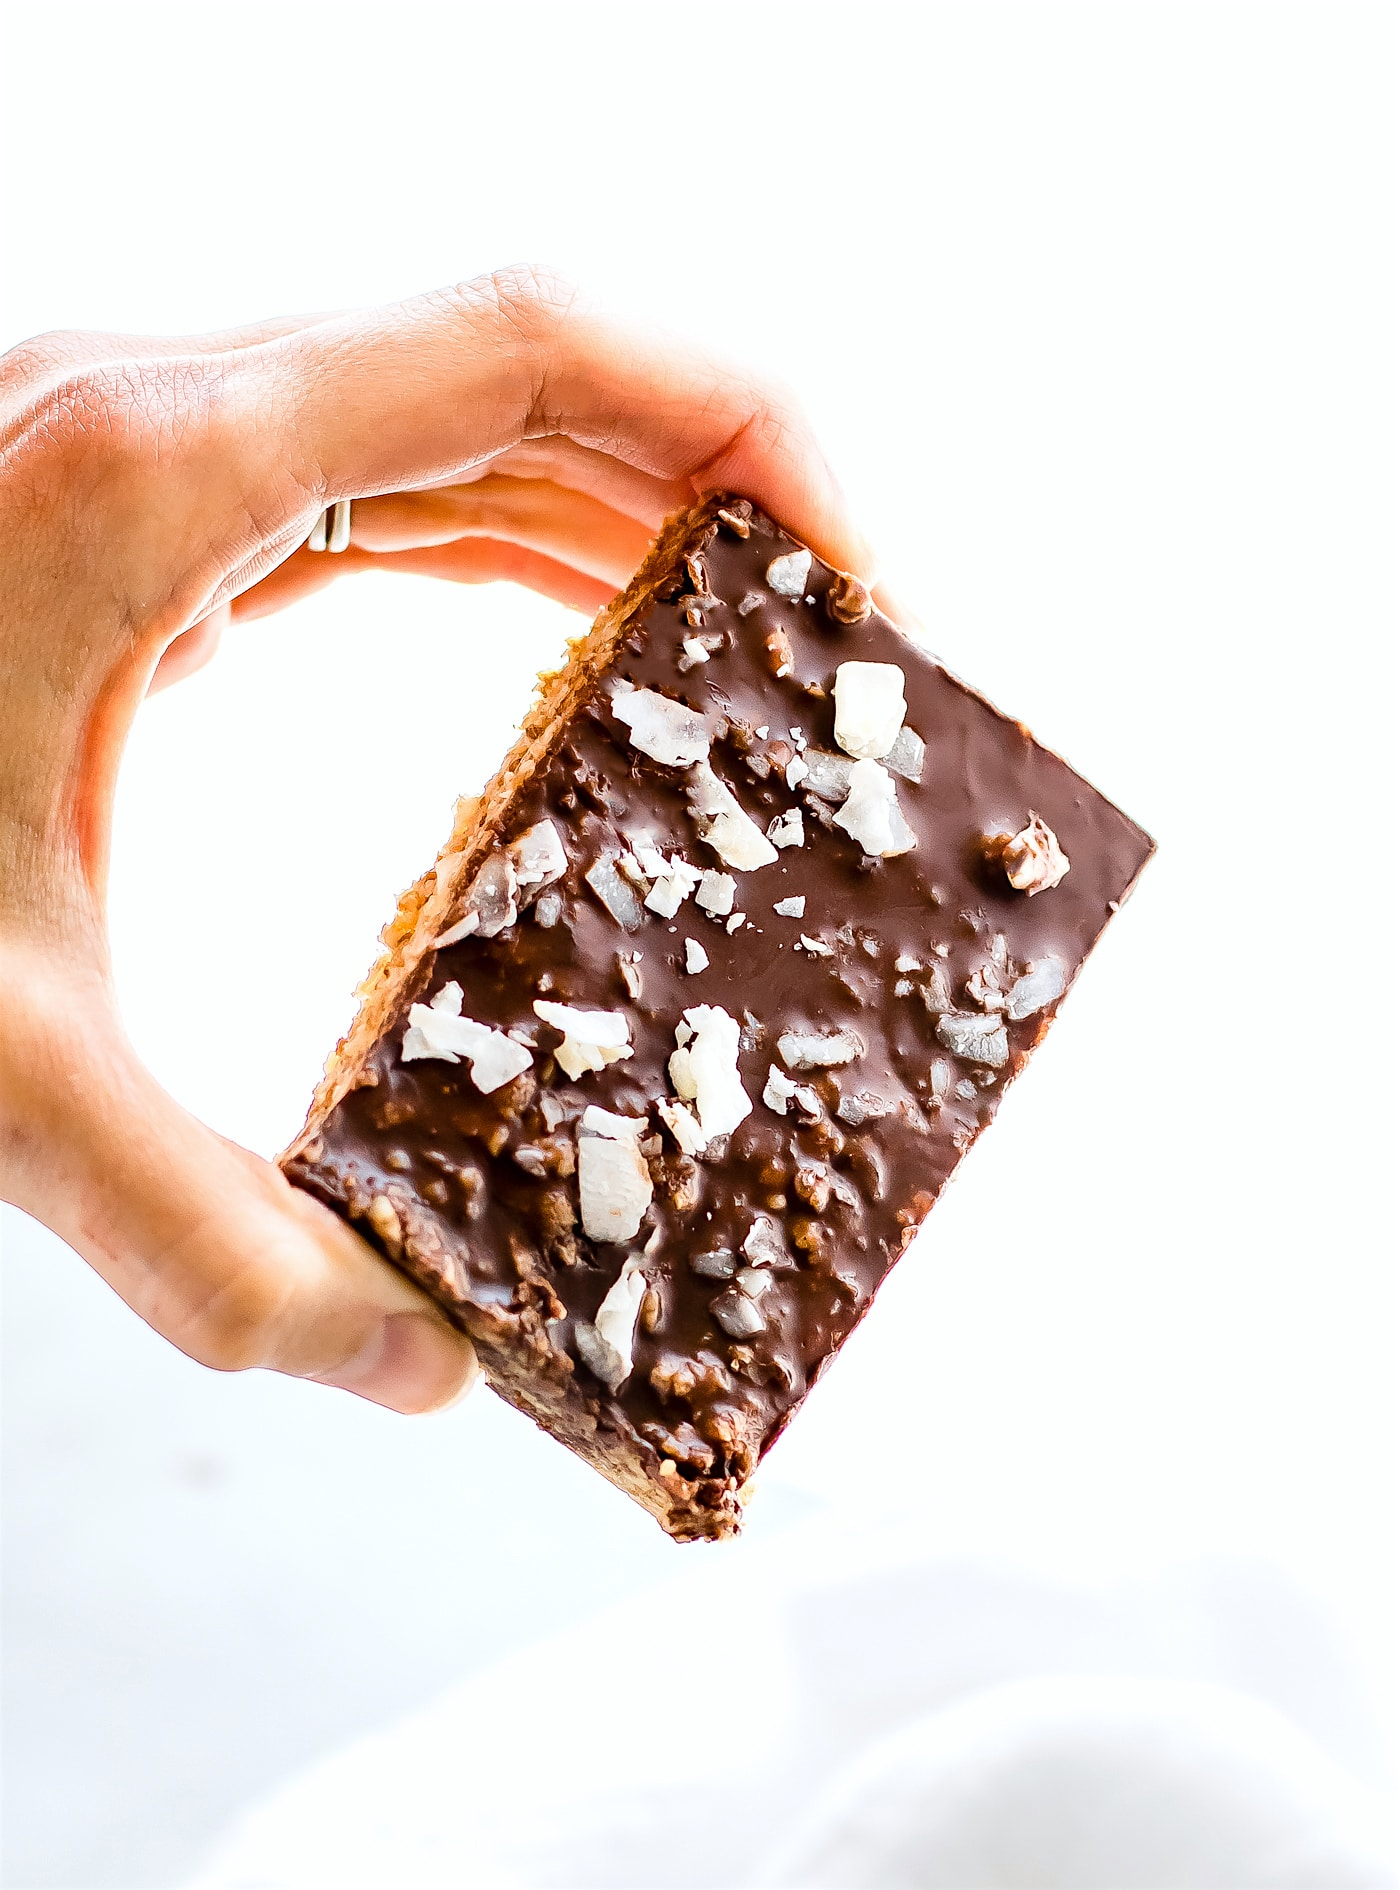 no-bake-chocolate-cashew-bars-paleo-vegan-9